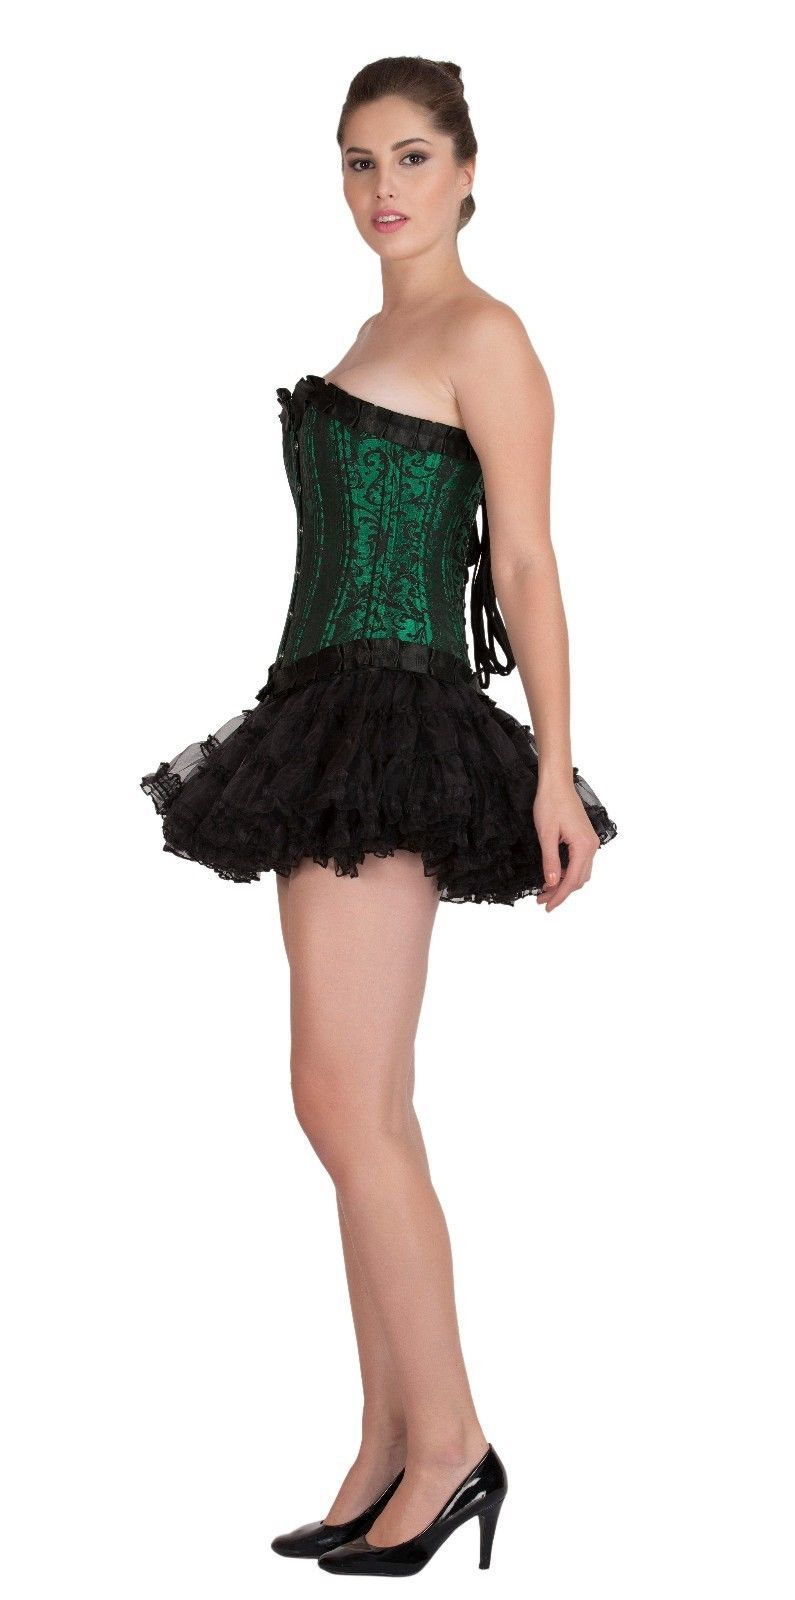 Green Black Brocade DOUBLE BONE Halloween Costume Bustier Overbust Corset Top